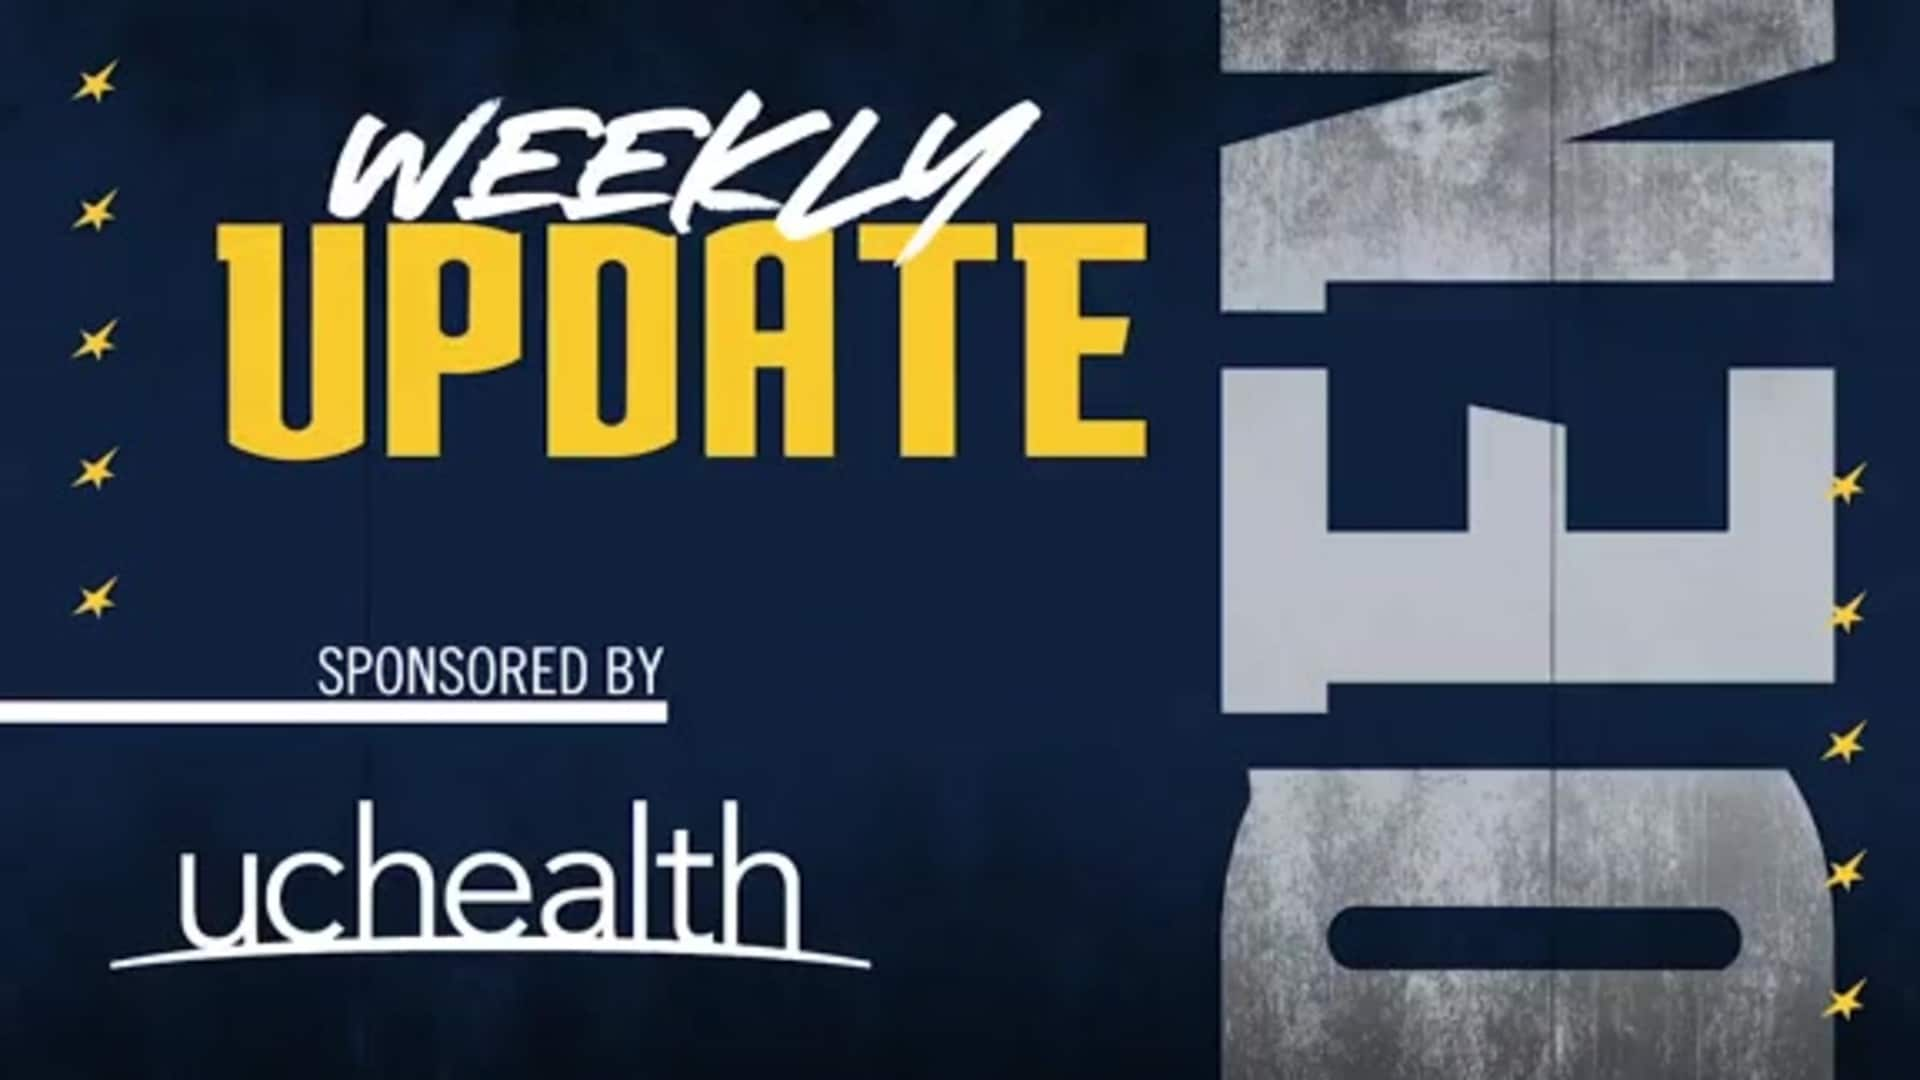 UCHealth Weekly Update | January 18